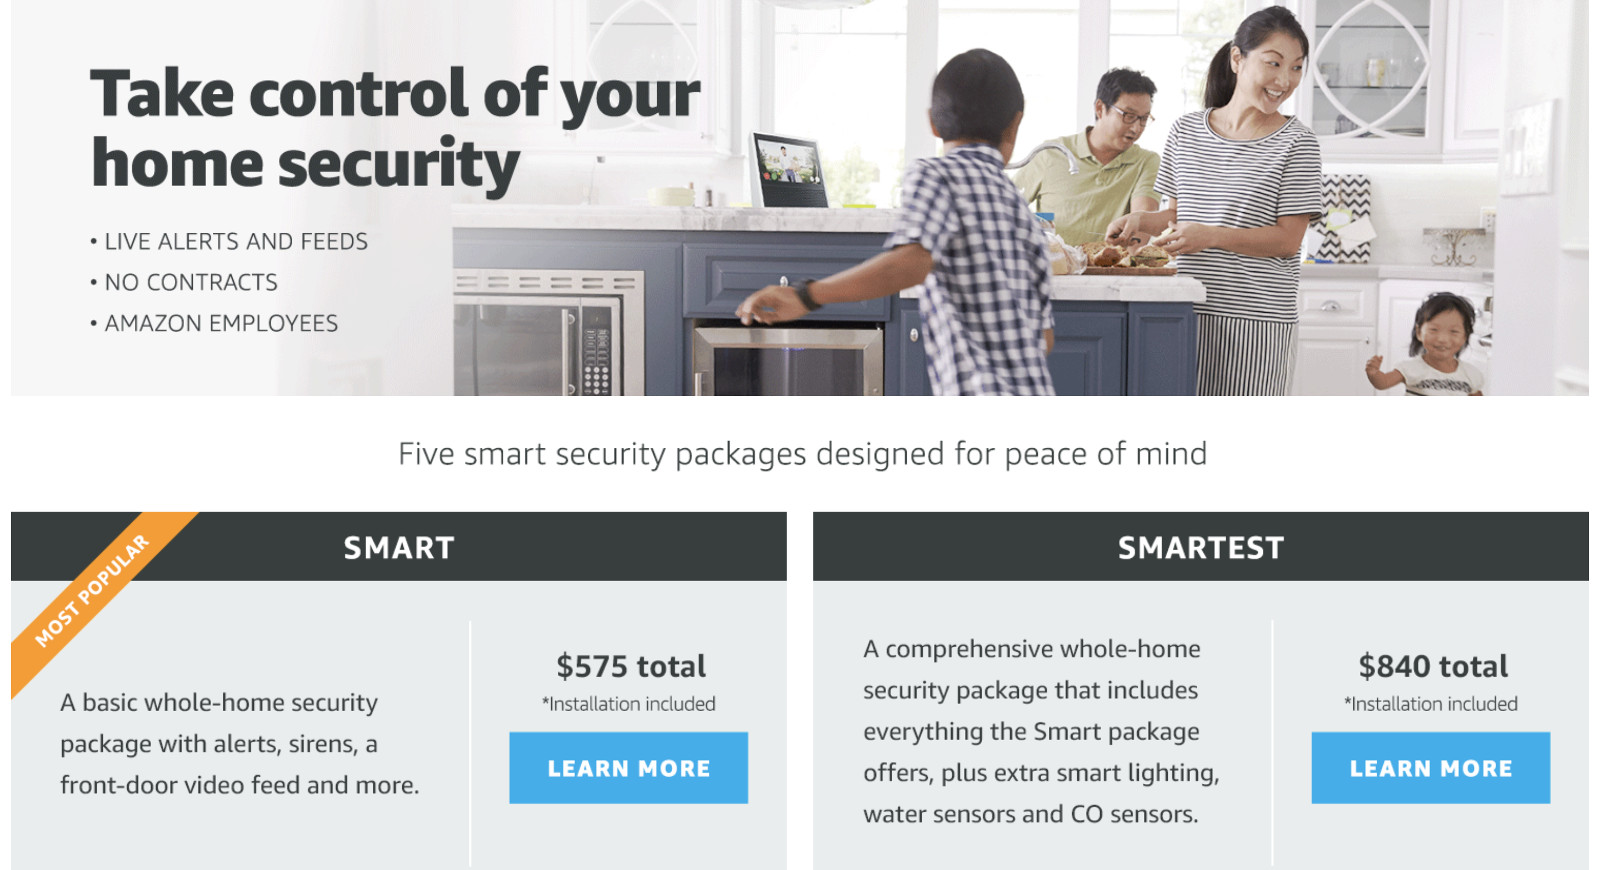 Amazon will install a full smart home security system for you